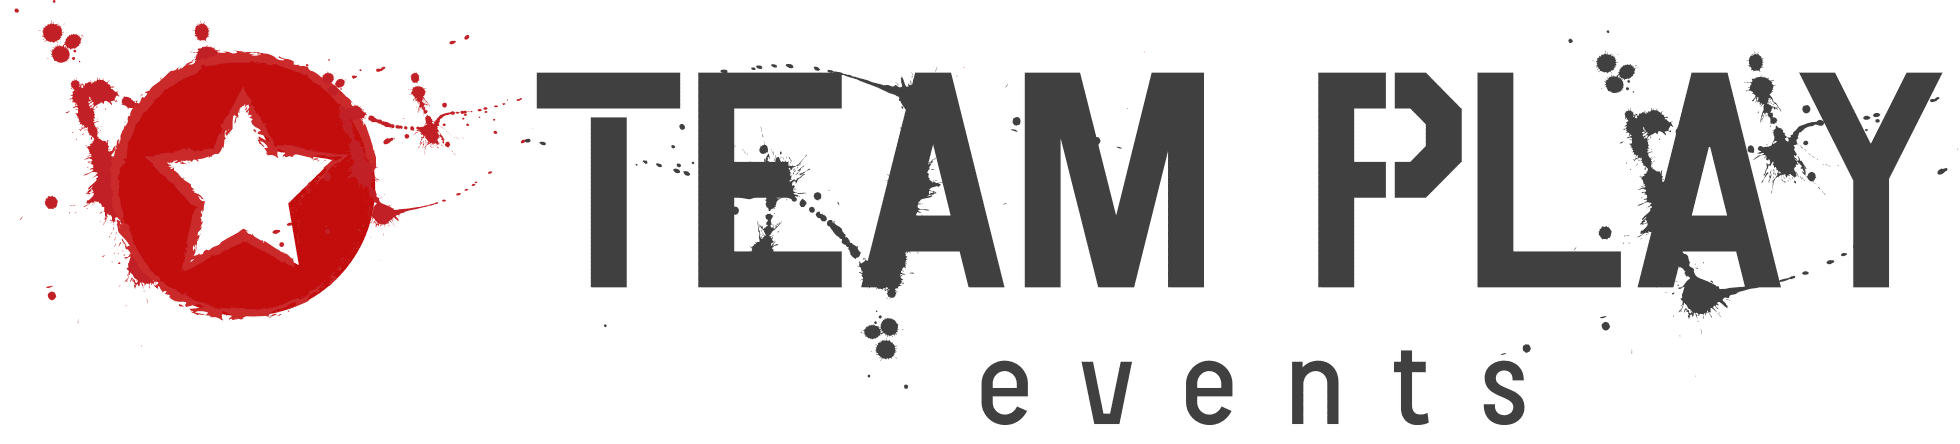 Teamplay-Events